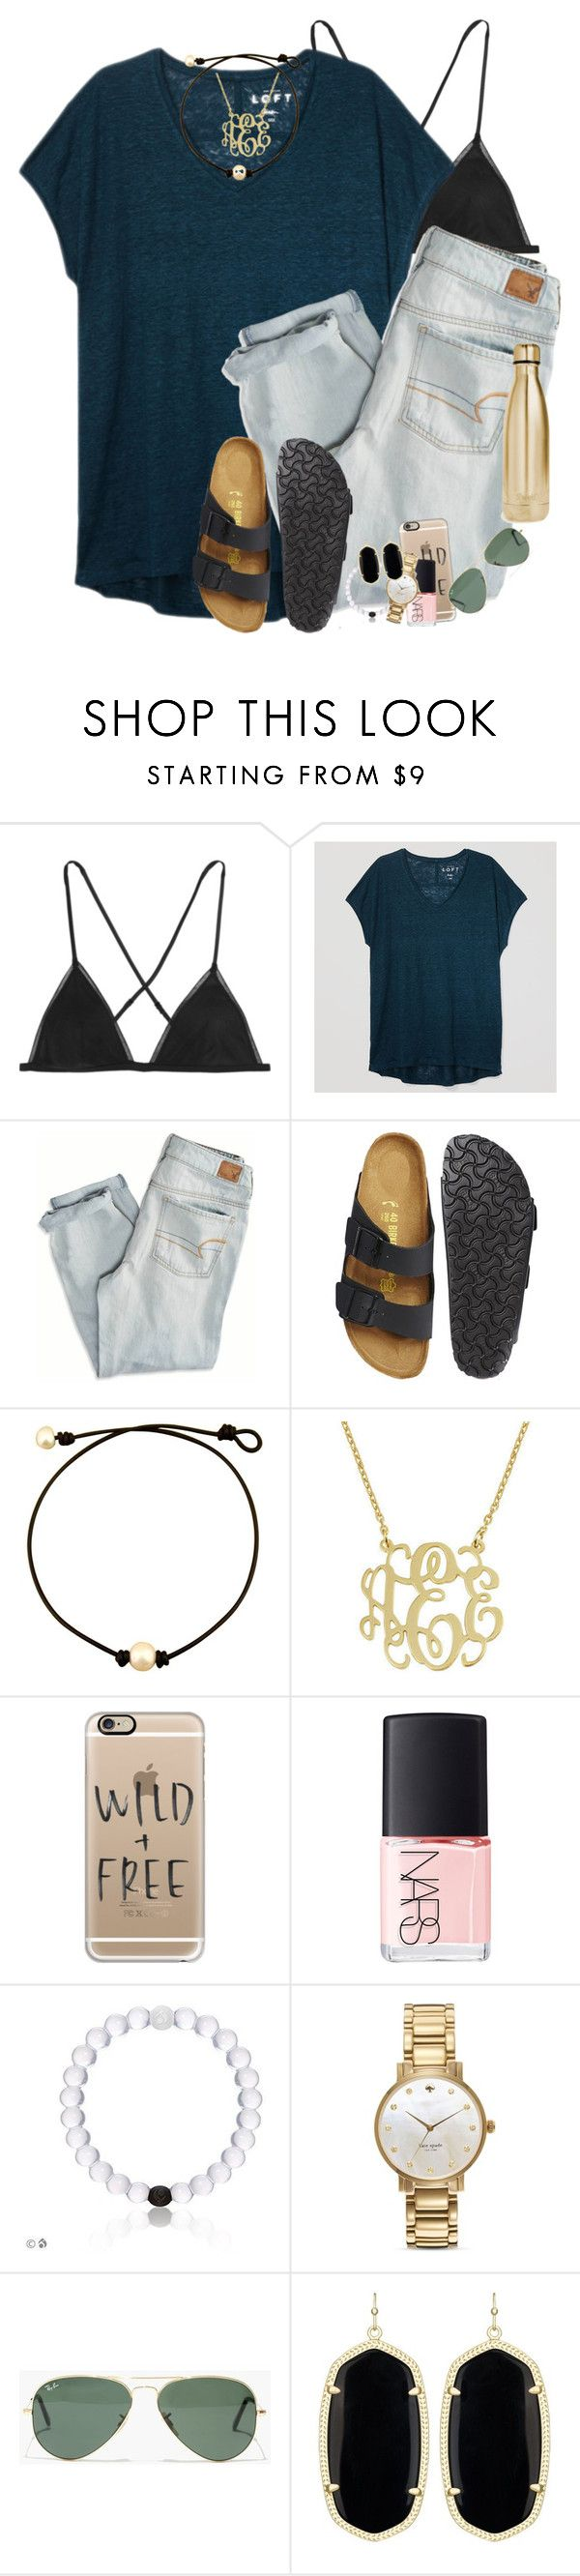 """babysitting tonight"" by smbprep ❤ liked on Polyvore featuring Kiki de Montparnasse, LOFT, American Eagle Outfitters, Birkenstock, Casetify, NARS Cosmetics, Kate Spade, Madewell, Kendra Scott and S'well"